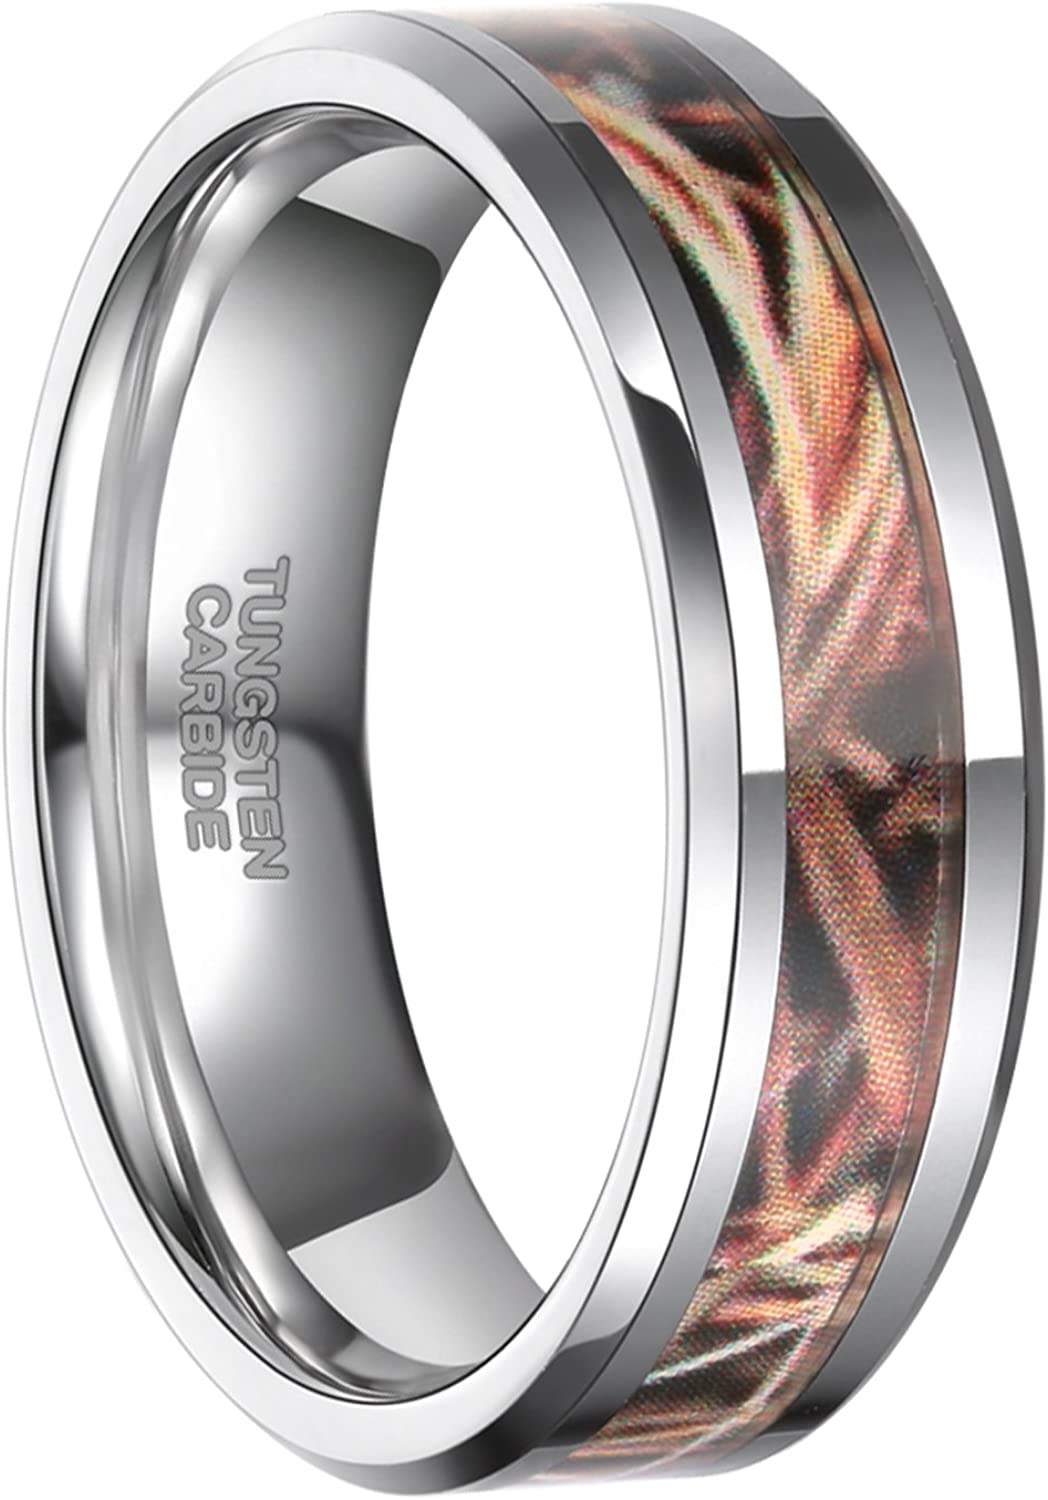 Frank S.Burton 6mm 8mm Camo Tungsten Rings Deer Antlers Hunting Camouflage Engagement Wedding Band Size 4-14